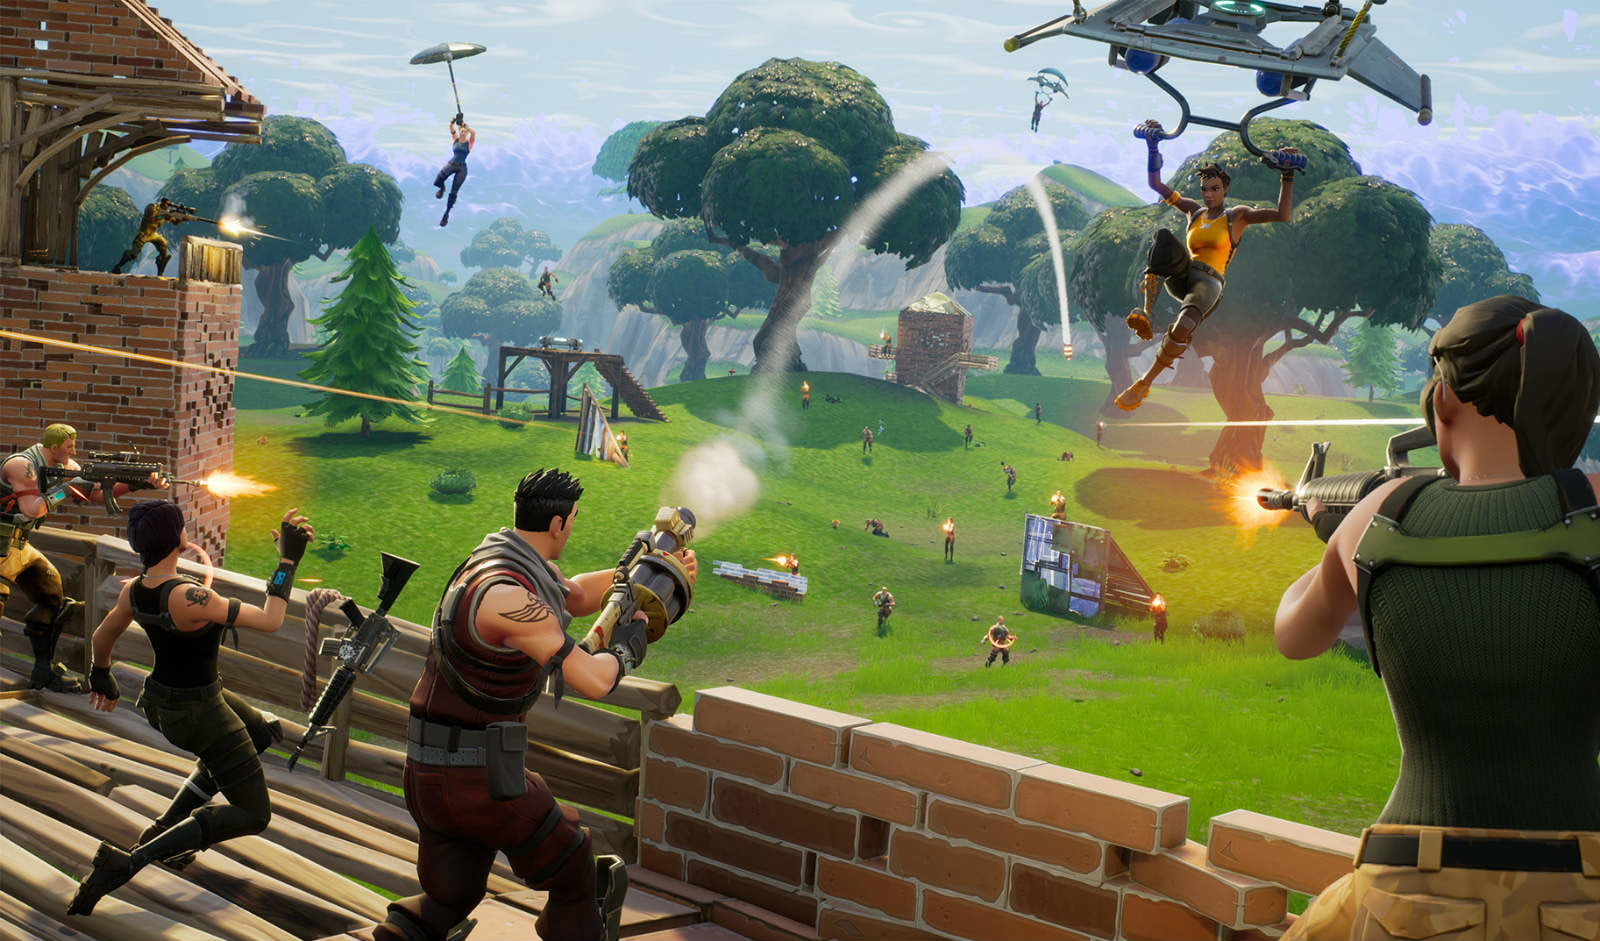 Fortnite Best Weapons For Securing A Victory In Battle